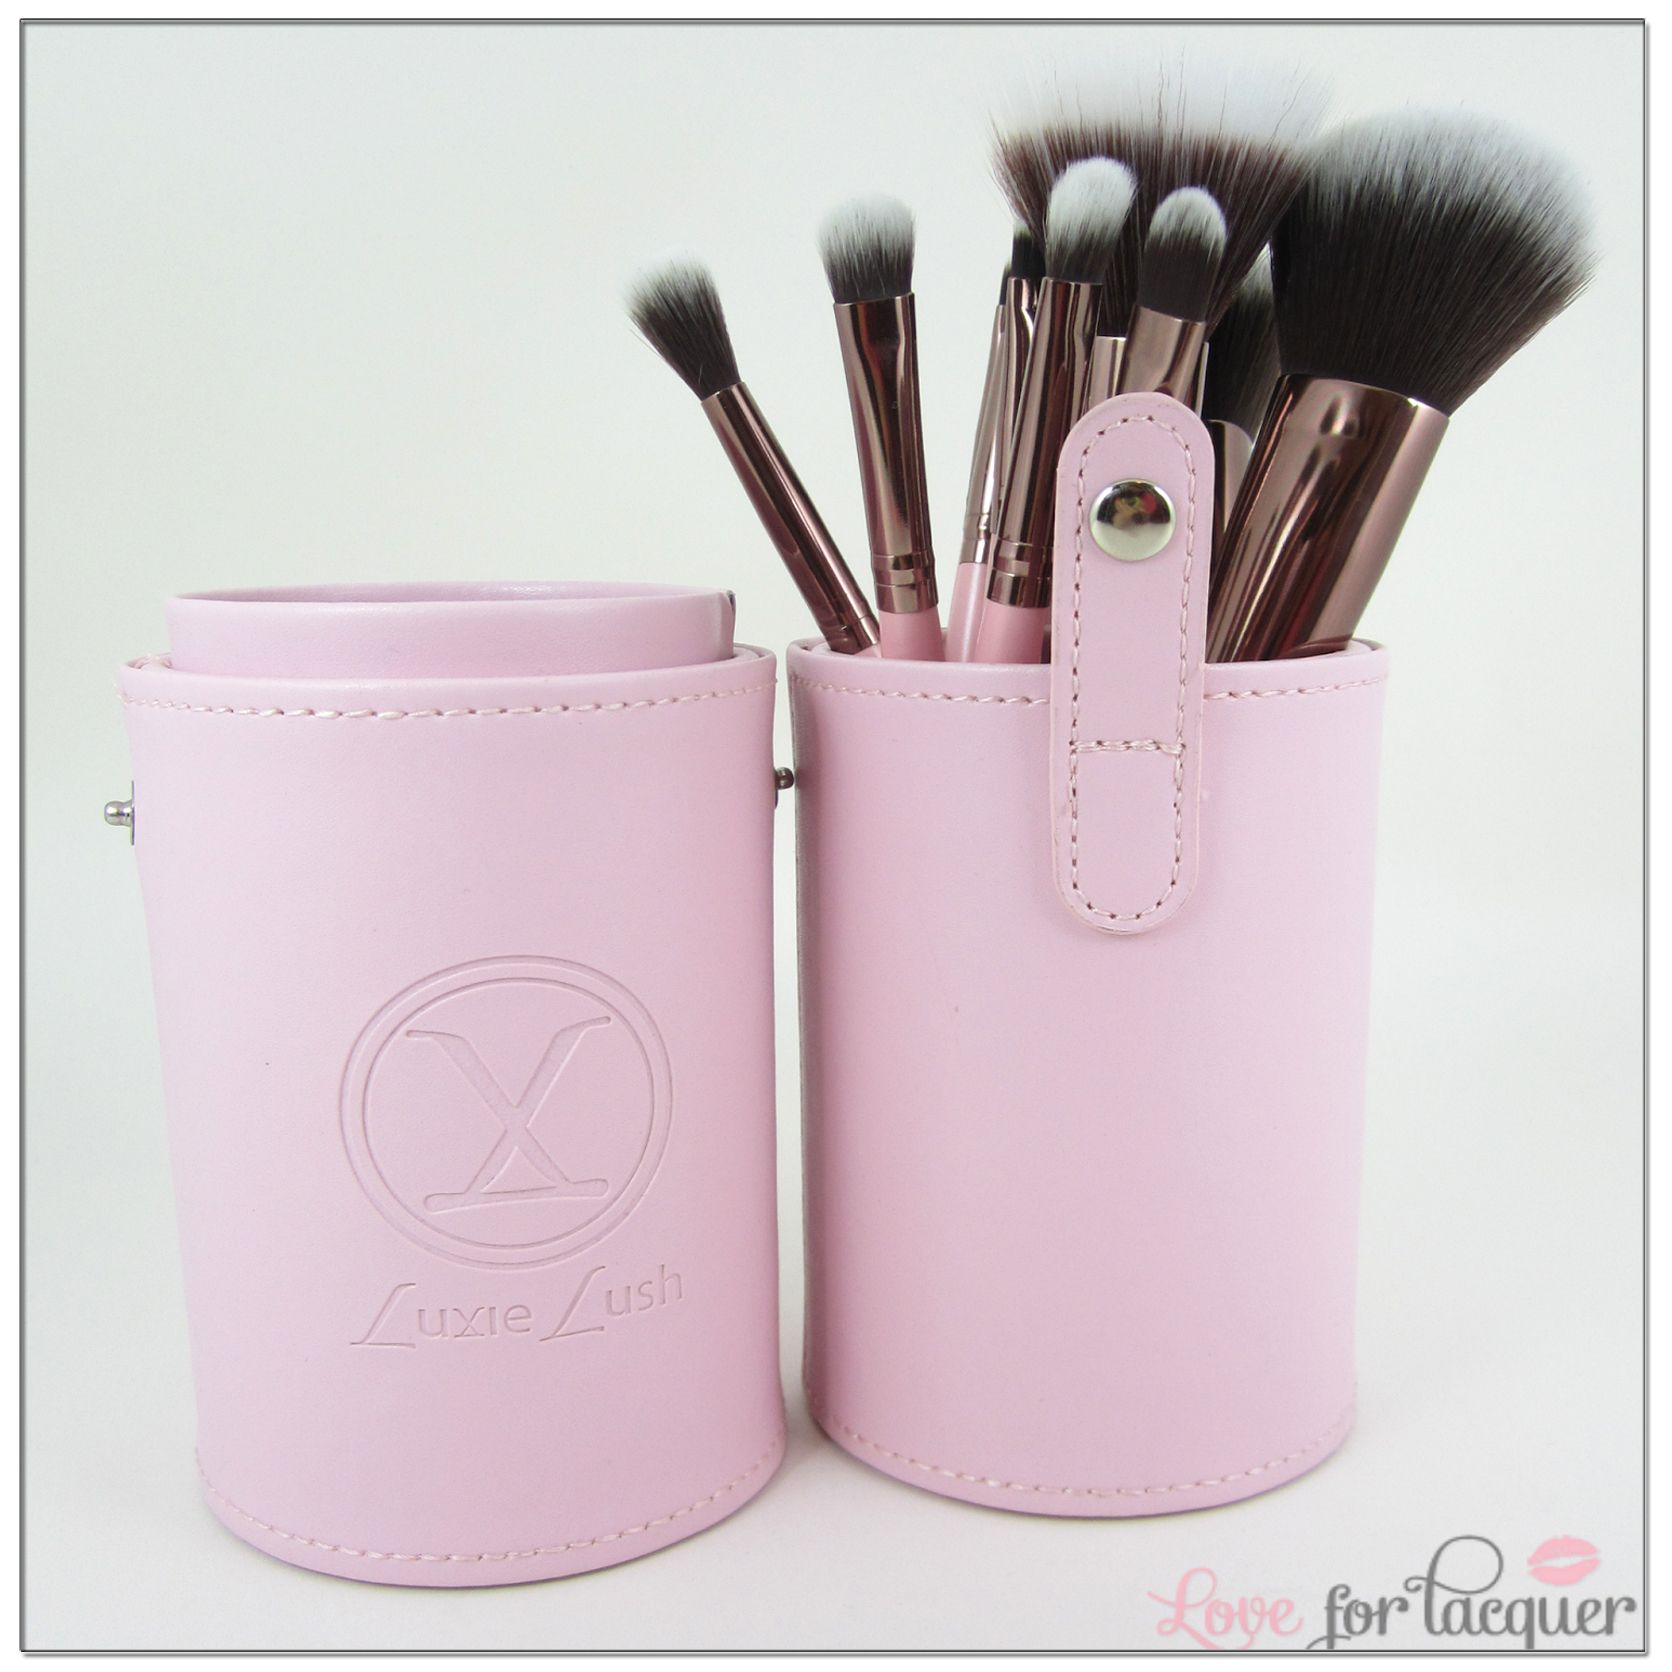 AS SEEN IN Luxie Lush Pink Perfection Synthetic Makeup